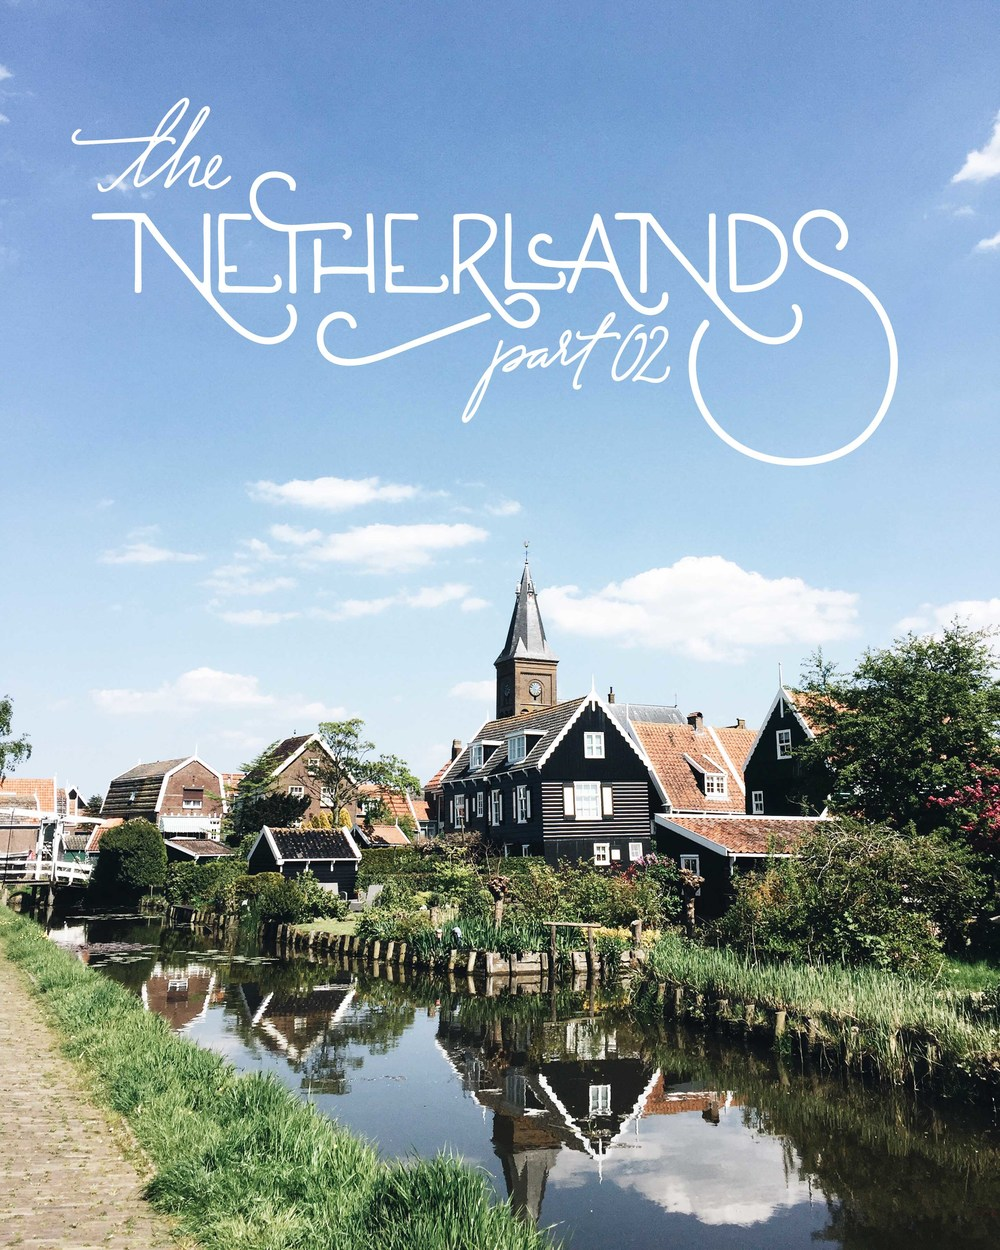 The Netherlands: Dutch Countryside and Villages | Part 02 | Sea of Atlas